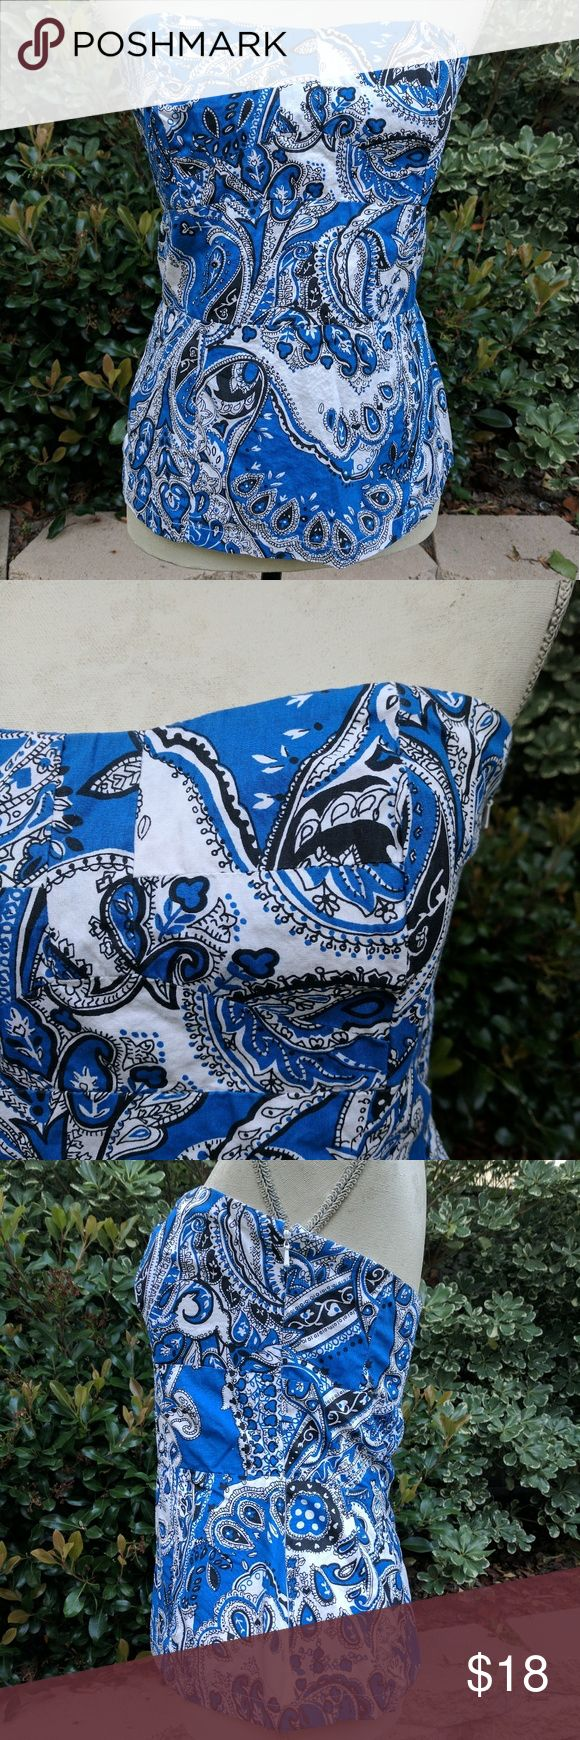 French Connection Paisley Blue Strapless Top Women's French Connection Paisley Blue and White strapless top / tank. Size 8. EUC. French Connection Tops Blouses